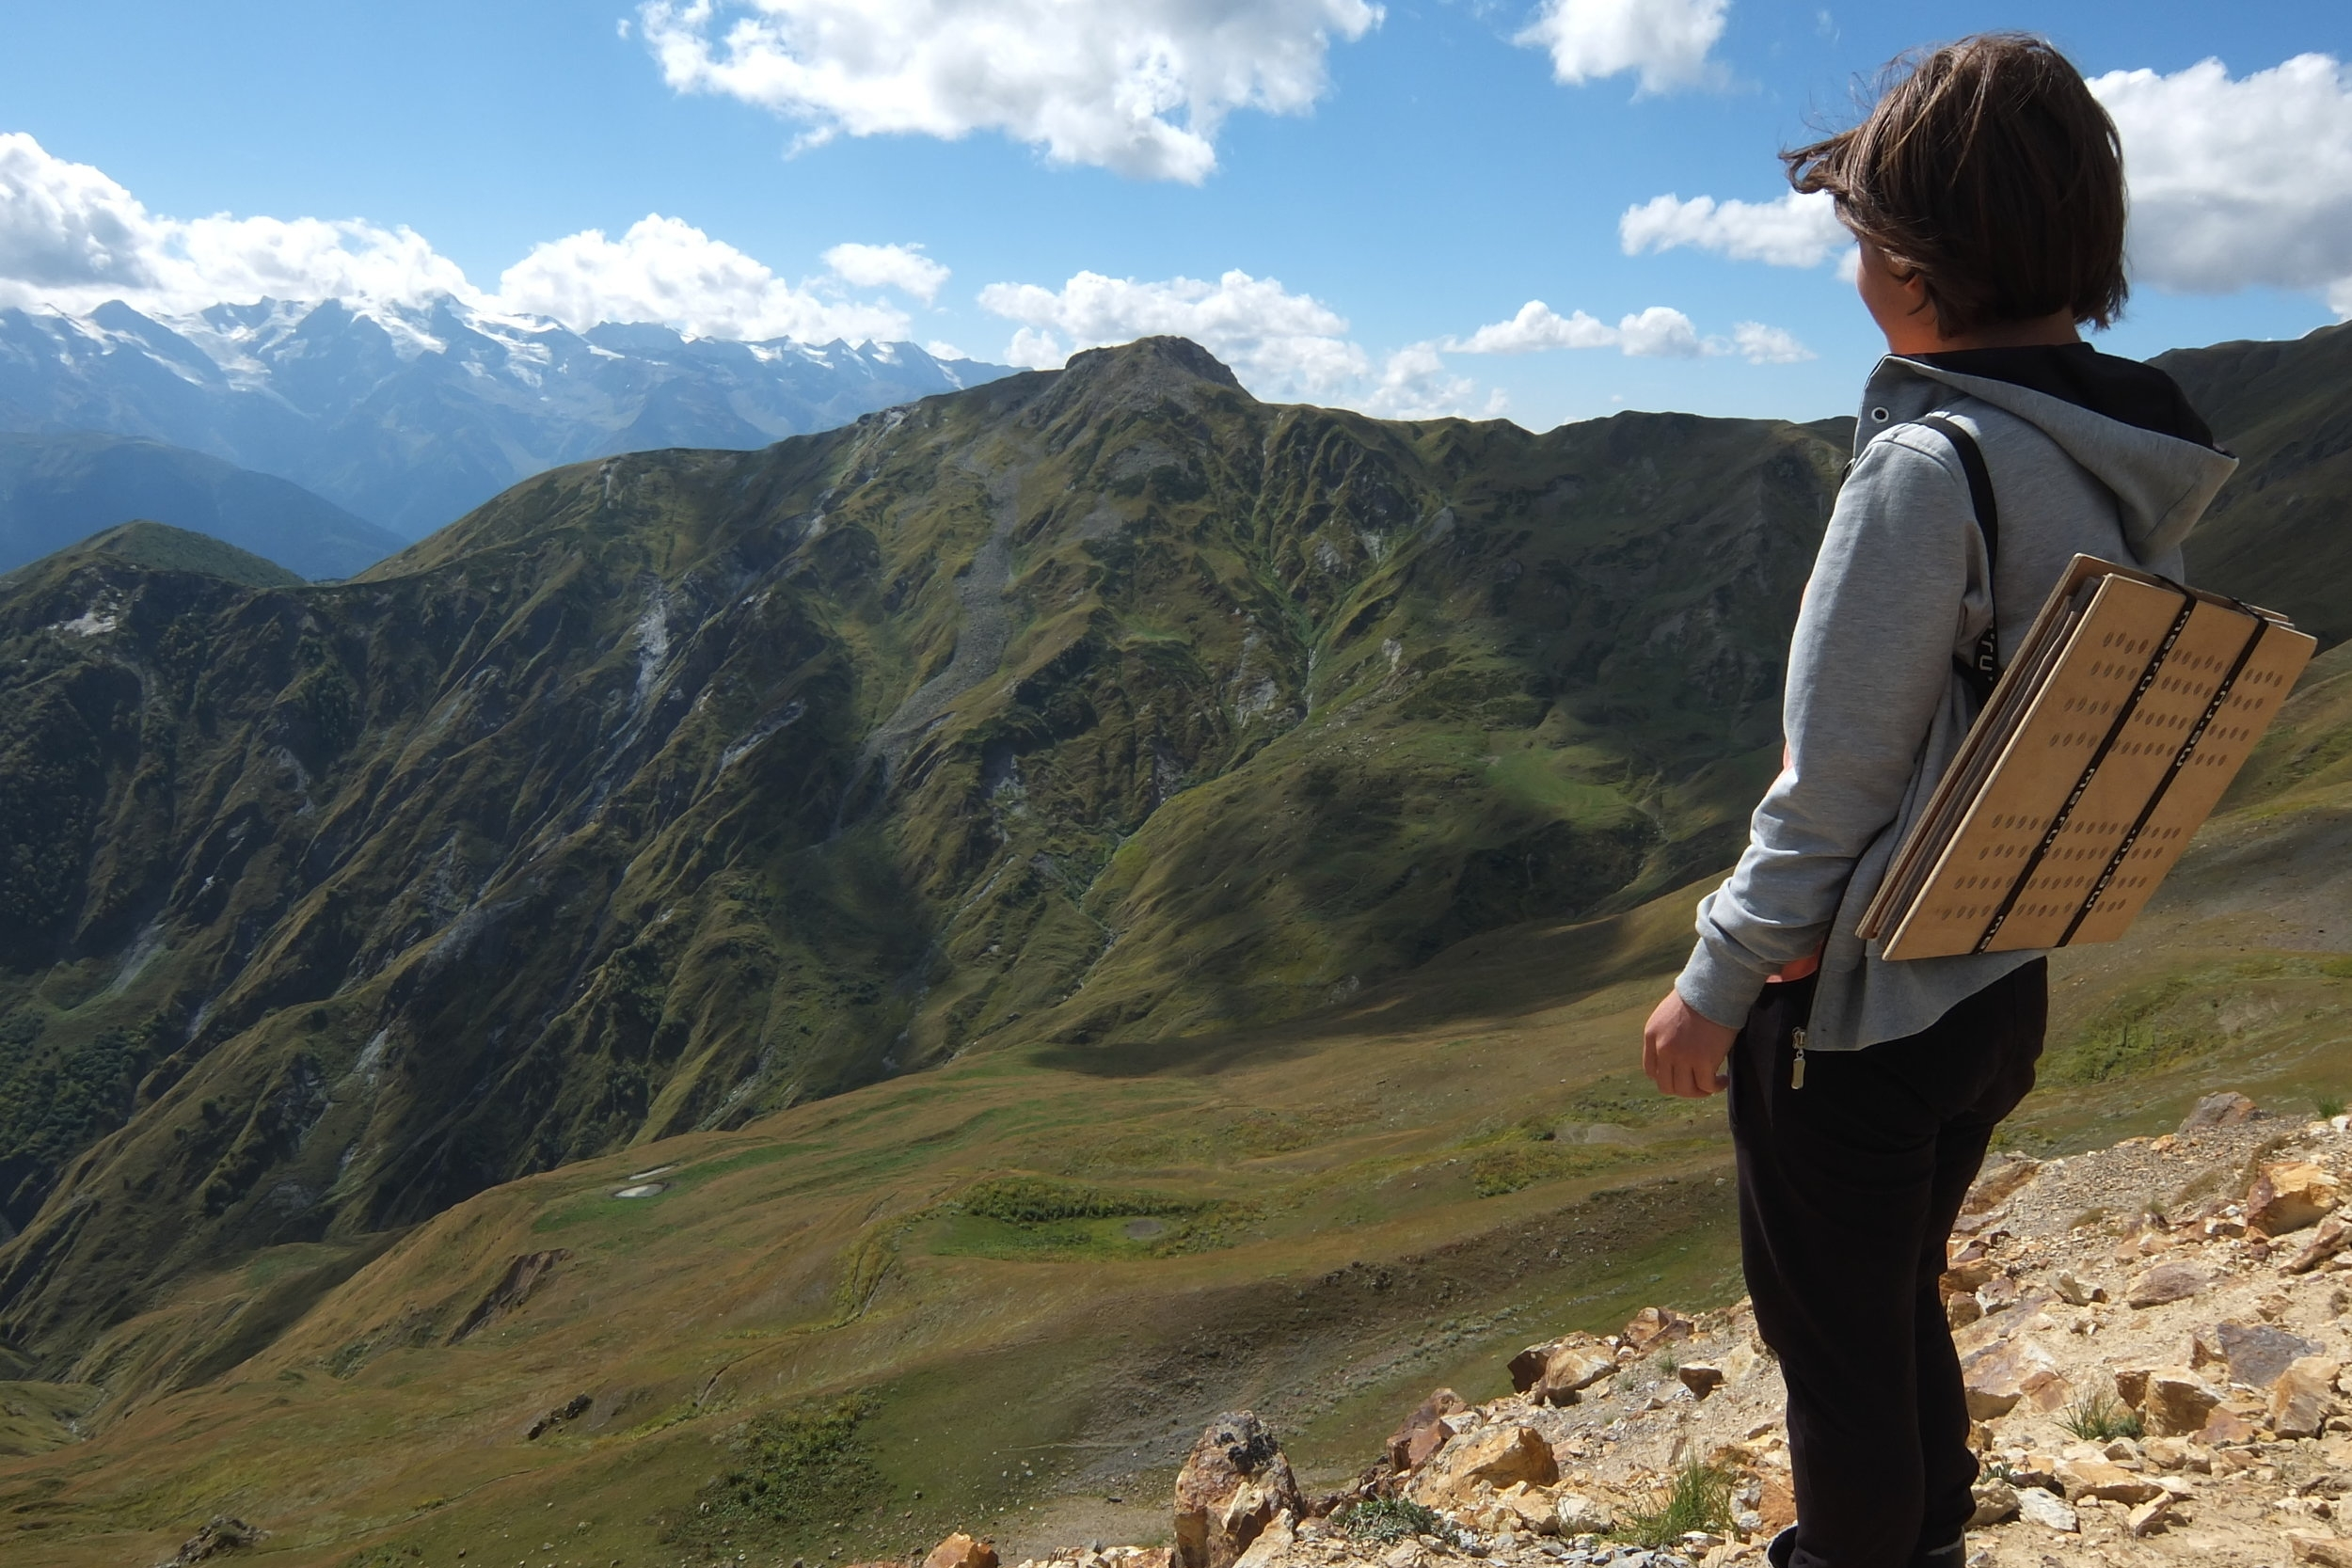 botany student in caucasus mountains.2014.JPG